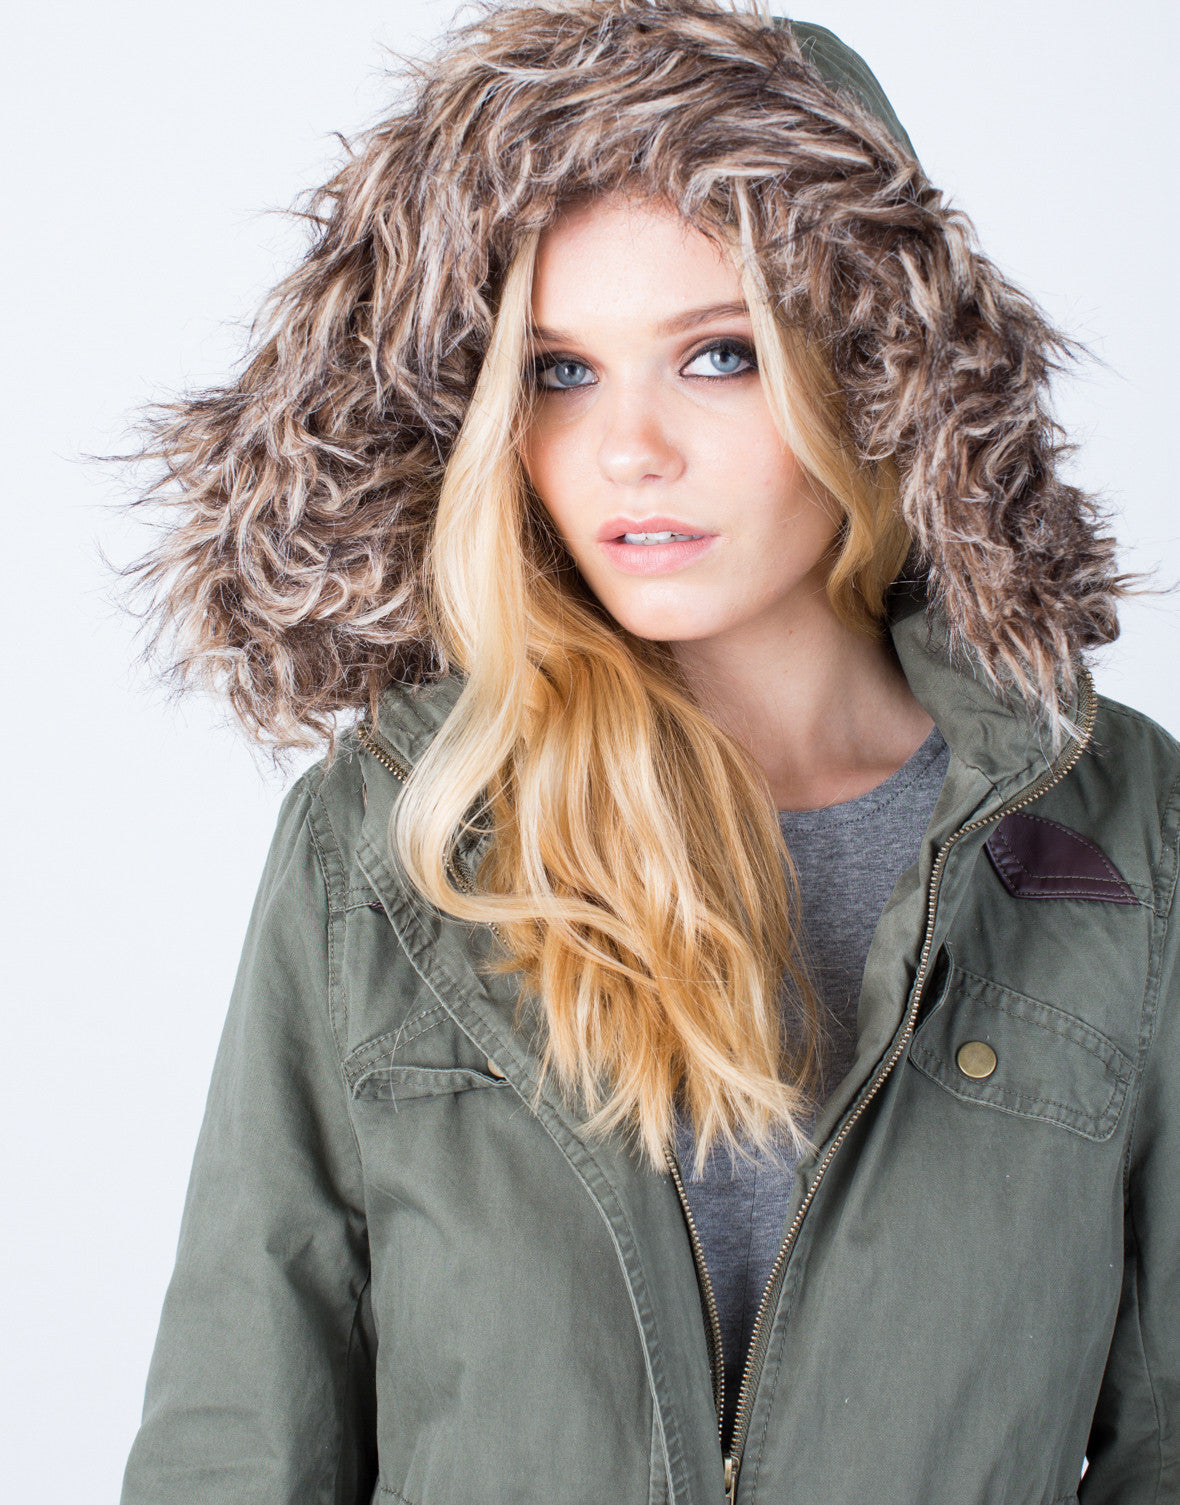 Detail of Furry Nice Parka Jacket